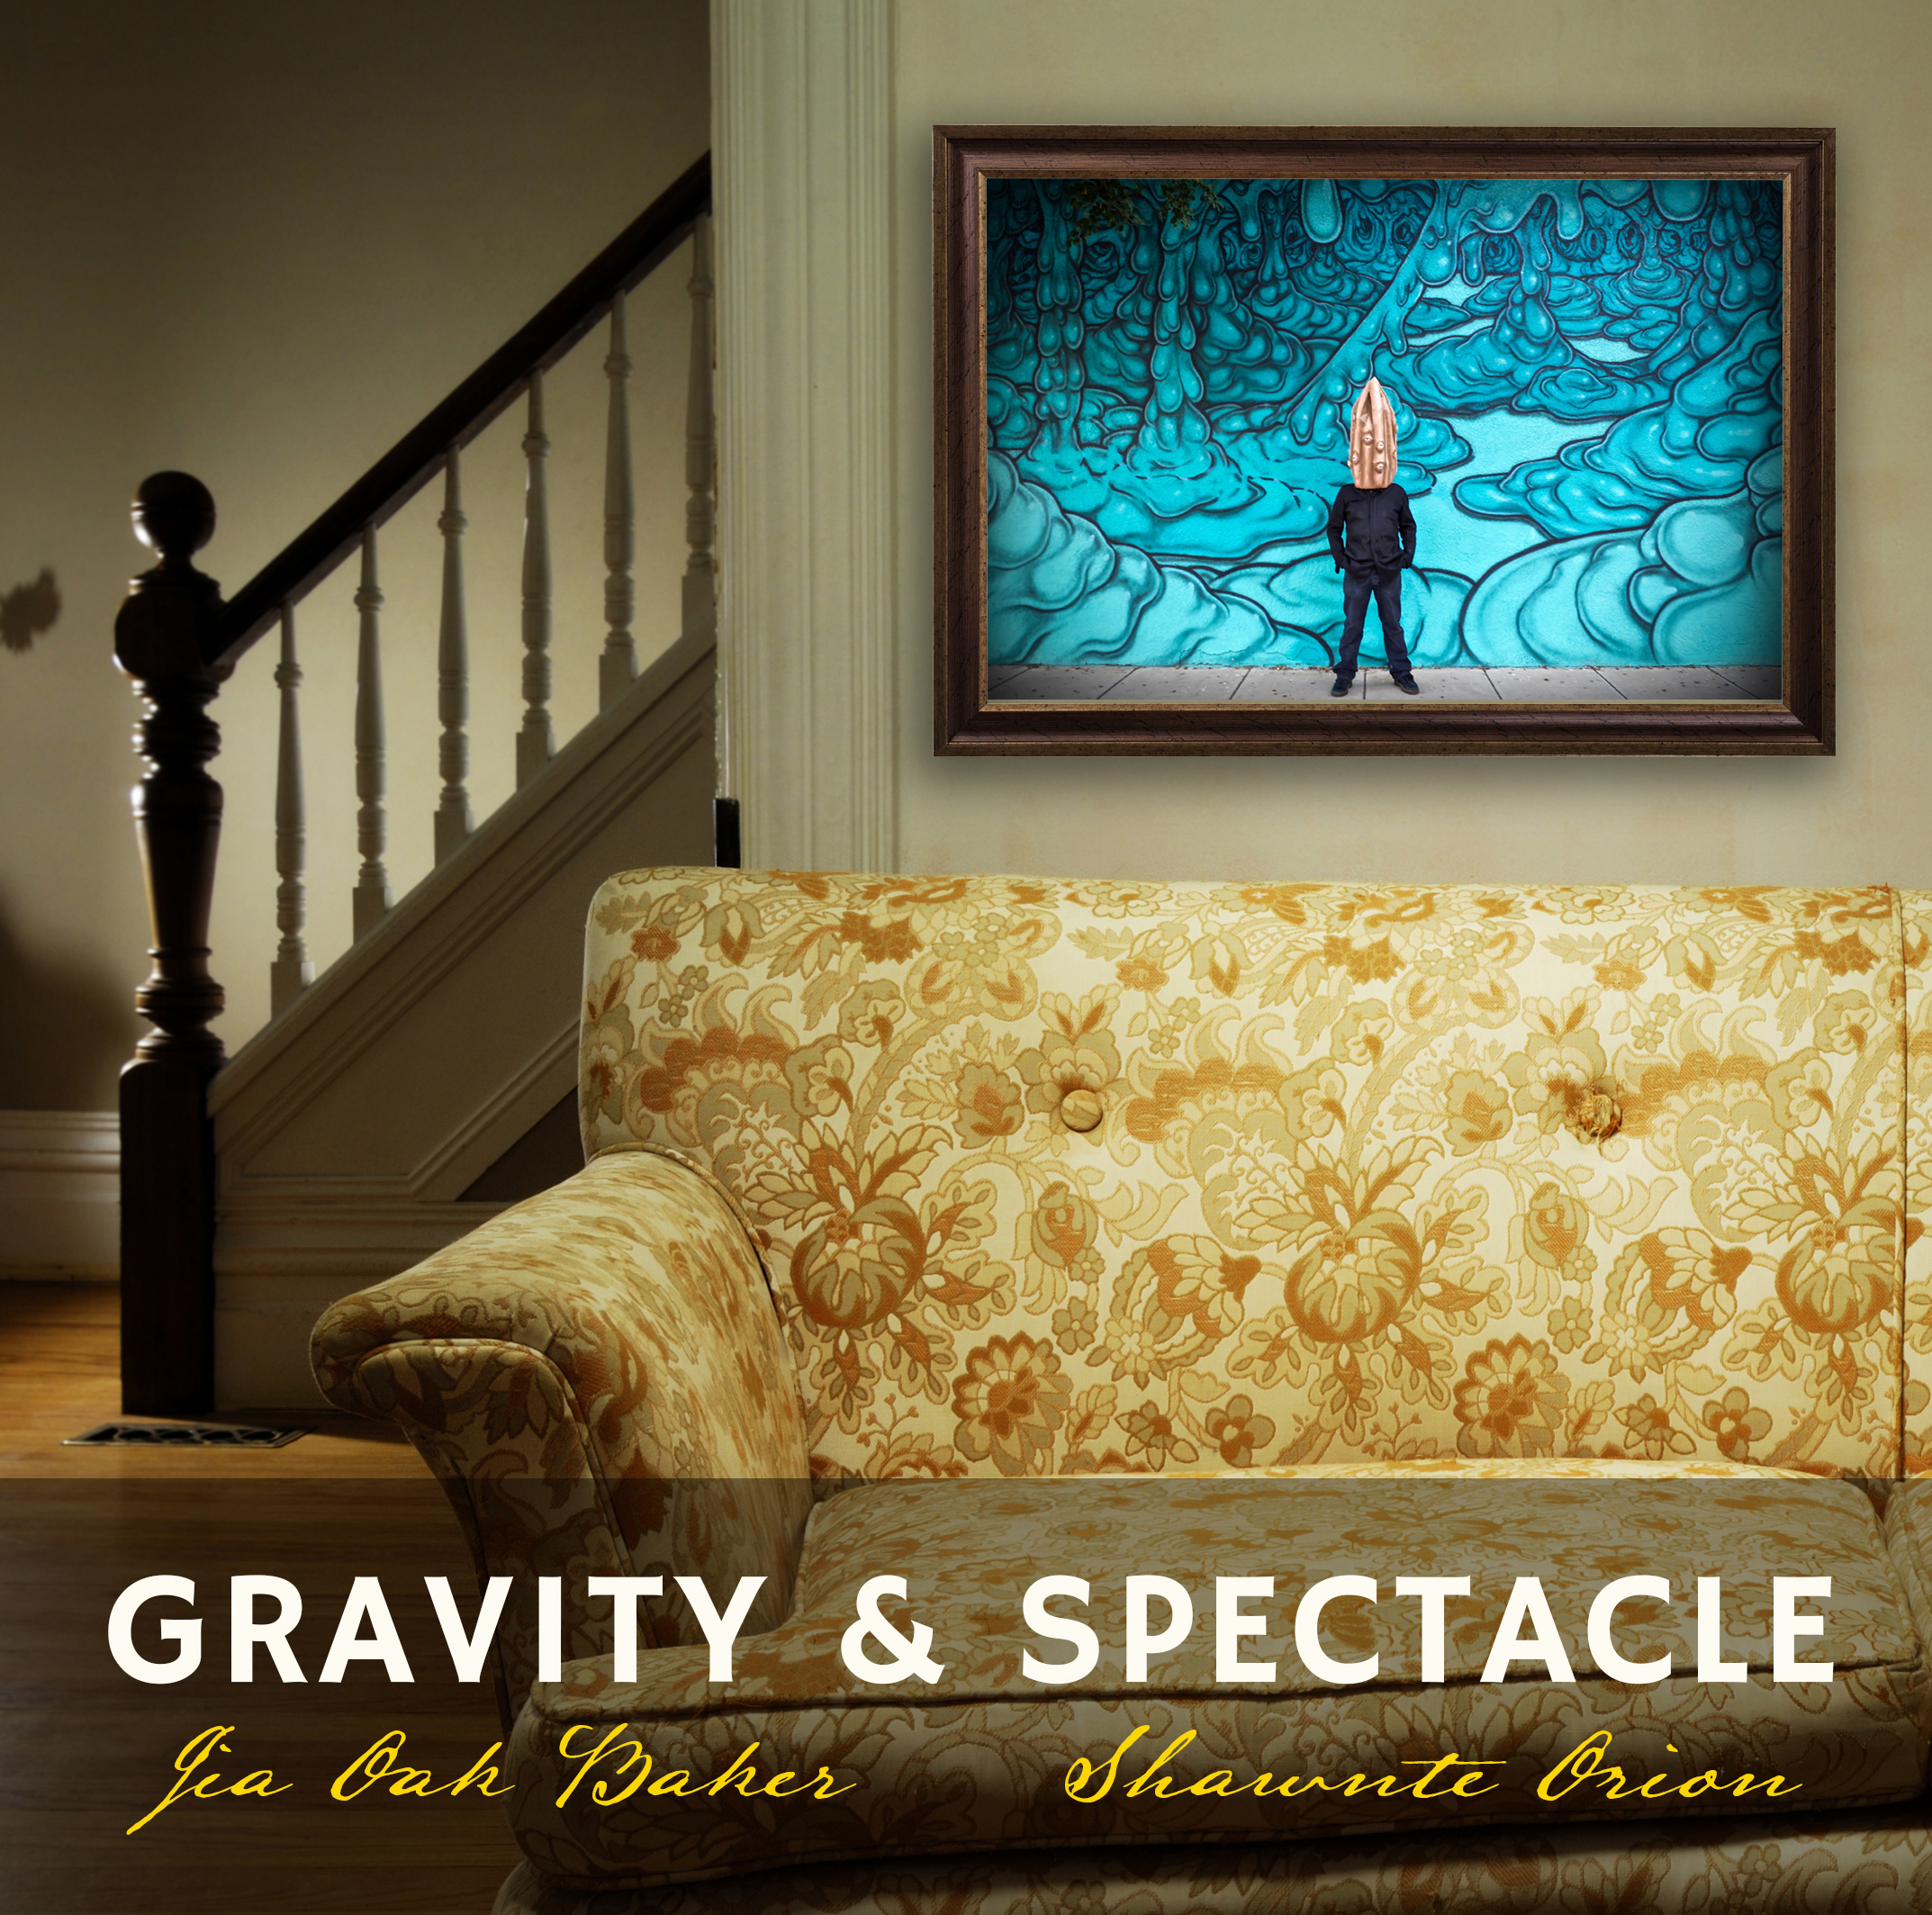 Gravity & Spectacle